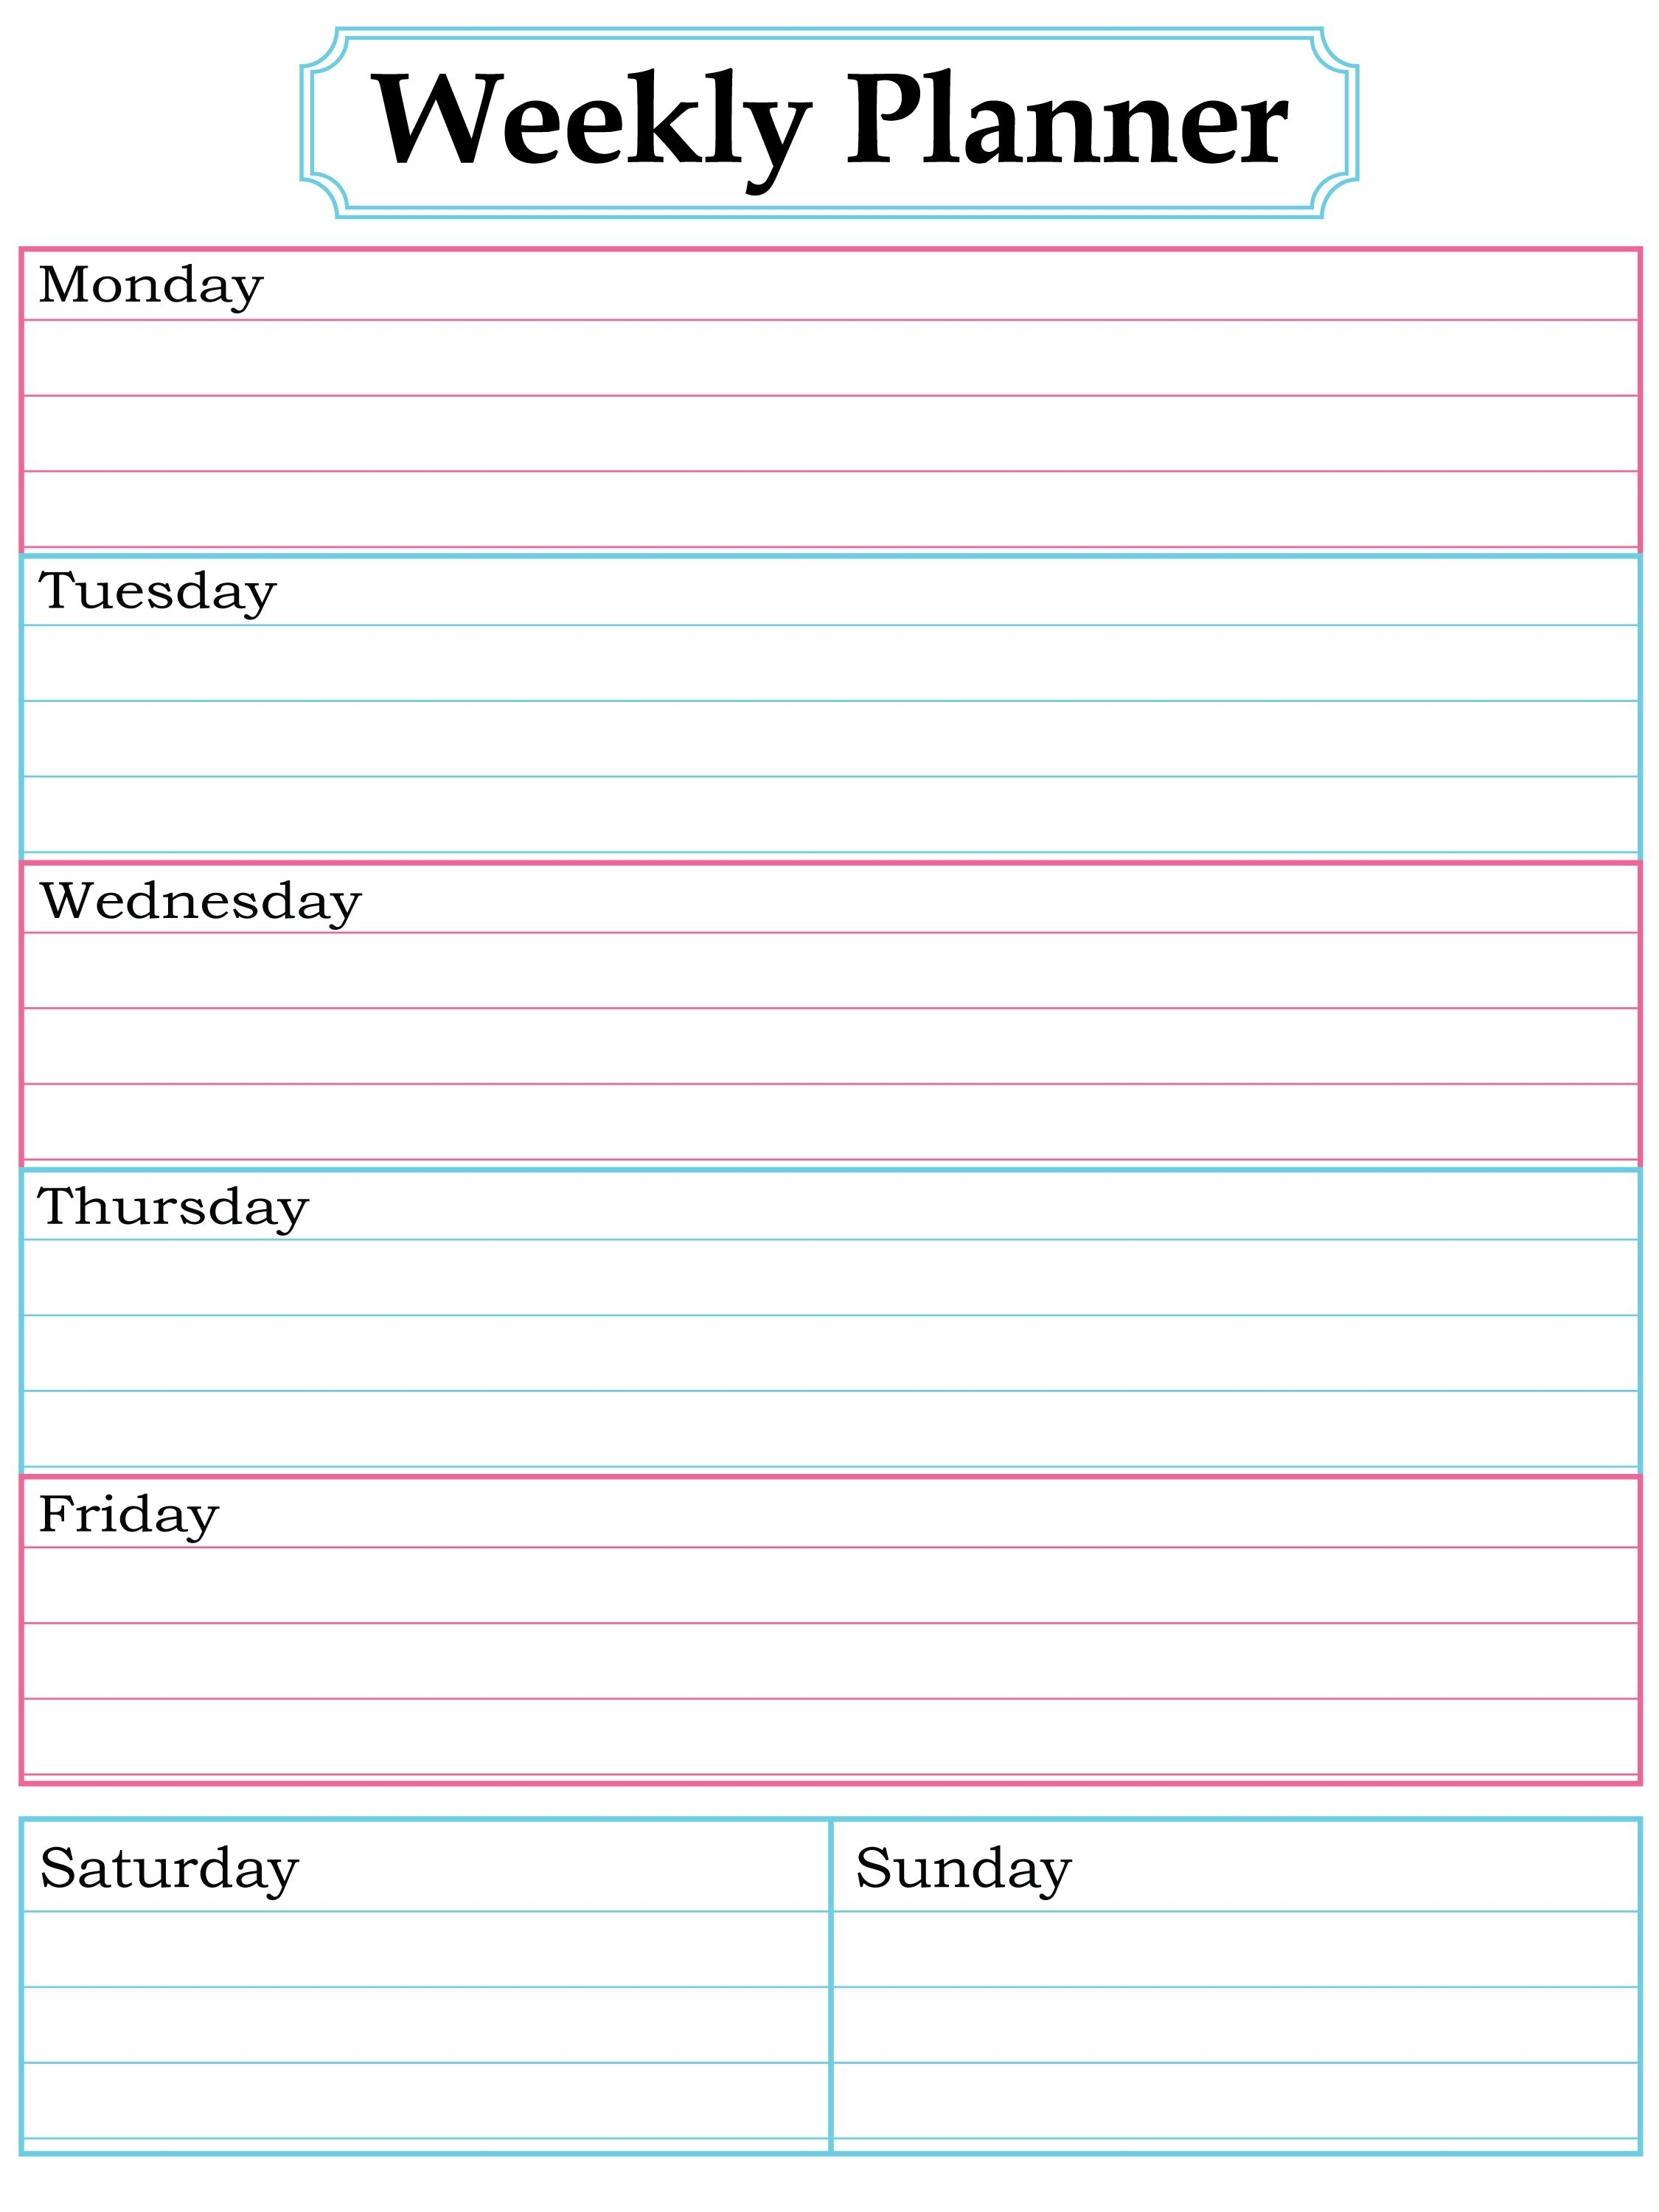 Weekly Calendar List : Weekly planner printable nice simple clean lines